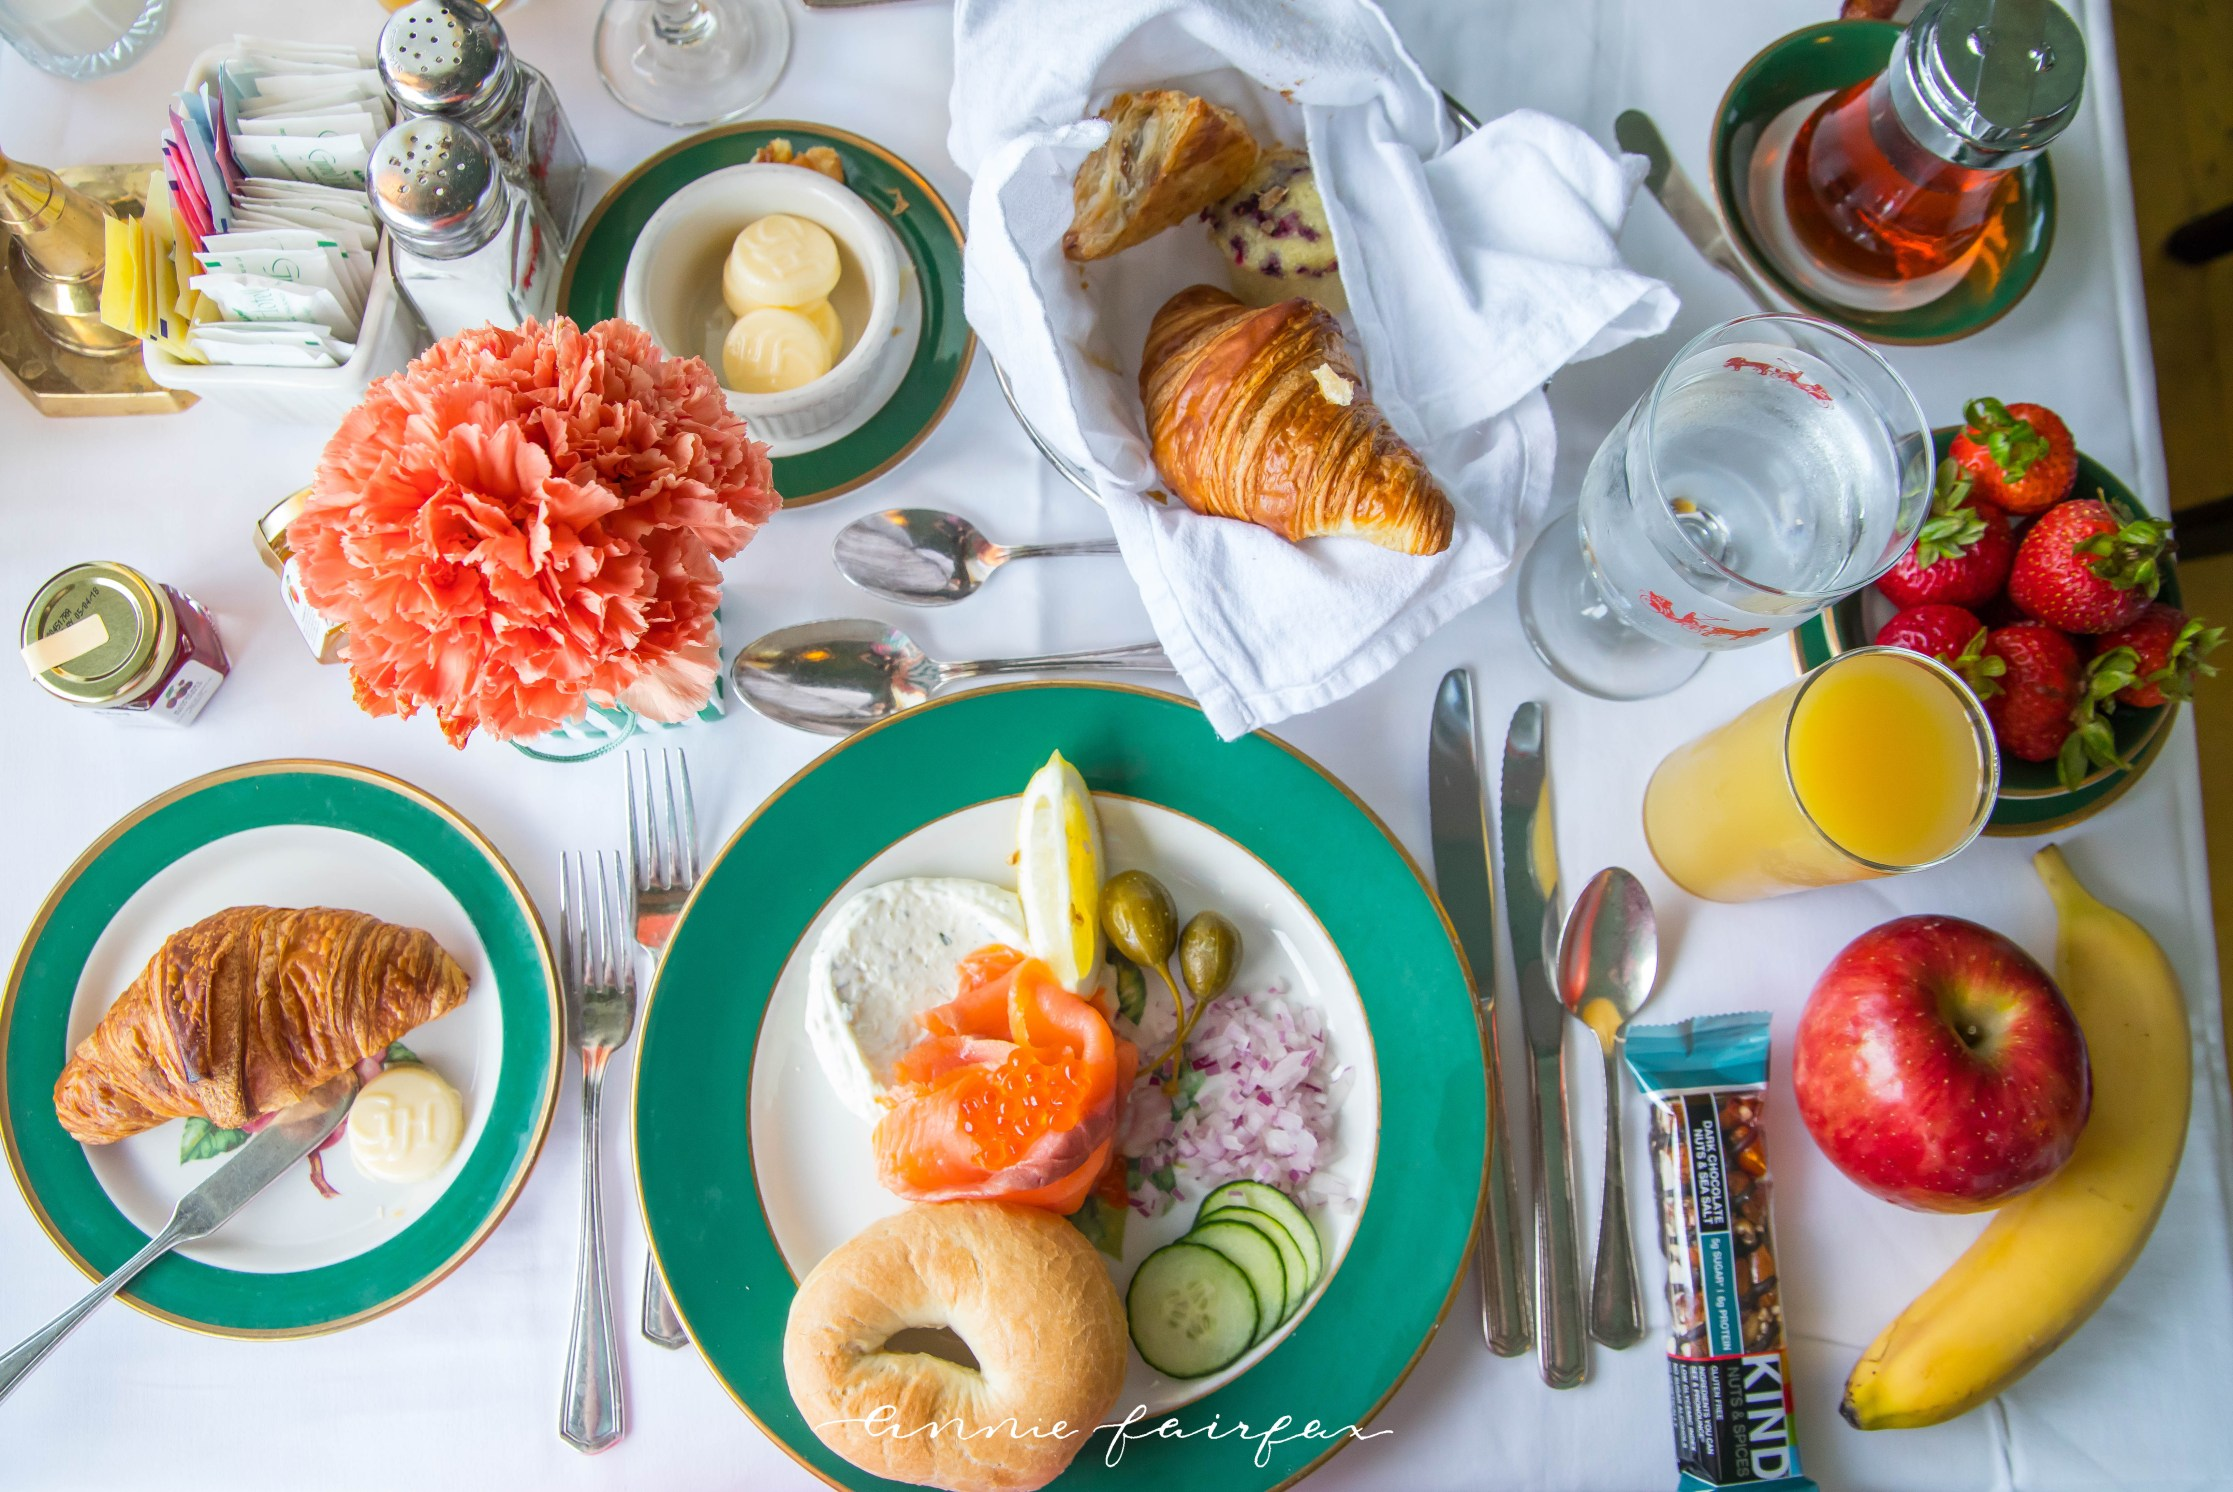 Dining at the Grand Hotel on Mackinac Island